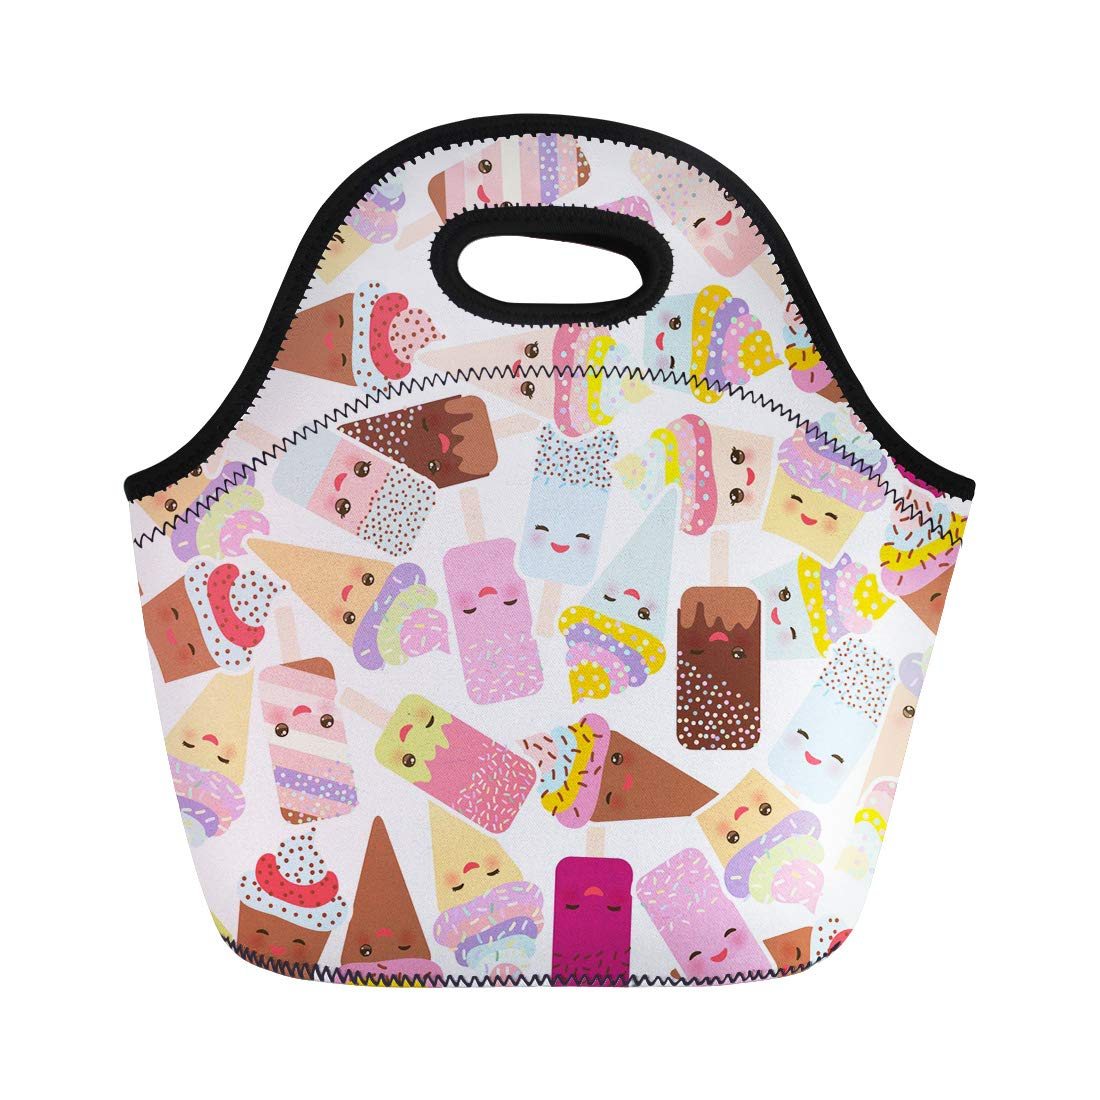 Semtomn Neoprene Lunch Tote Bag Cupcakes Cream Ice in Waffle Cones Lolly Kawaii Pink Reusable Cooler Bags Insulated Thermal Picnic Handbag for Travel,School,Outdoors,Work by Semtomn